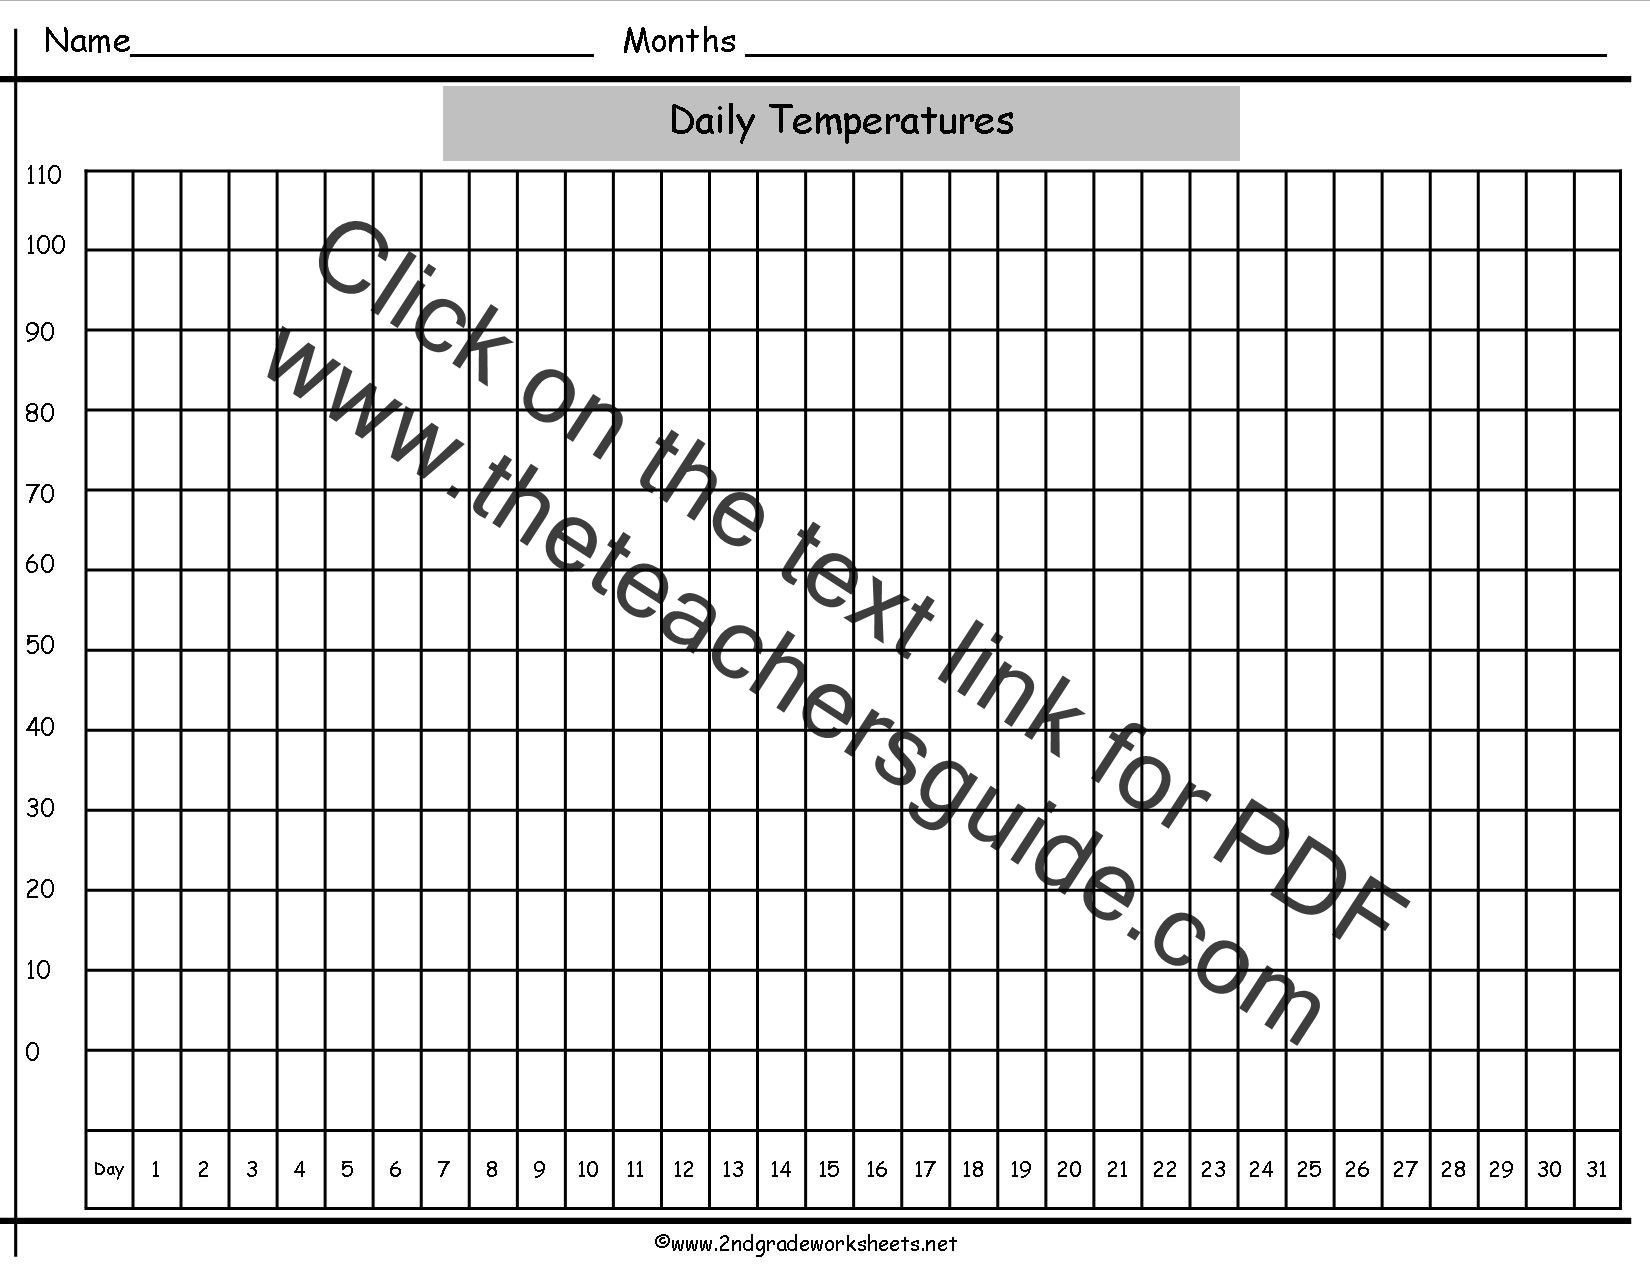 Dailytempsgraph on bar graph worksheet printable